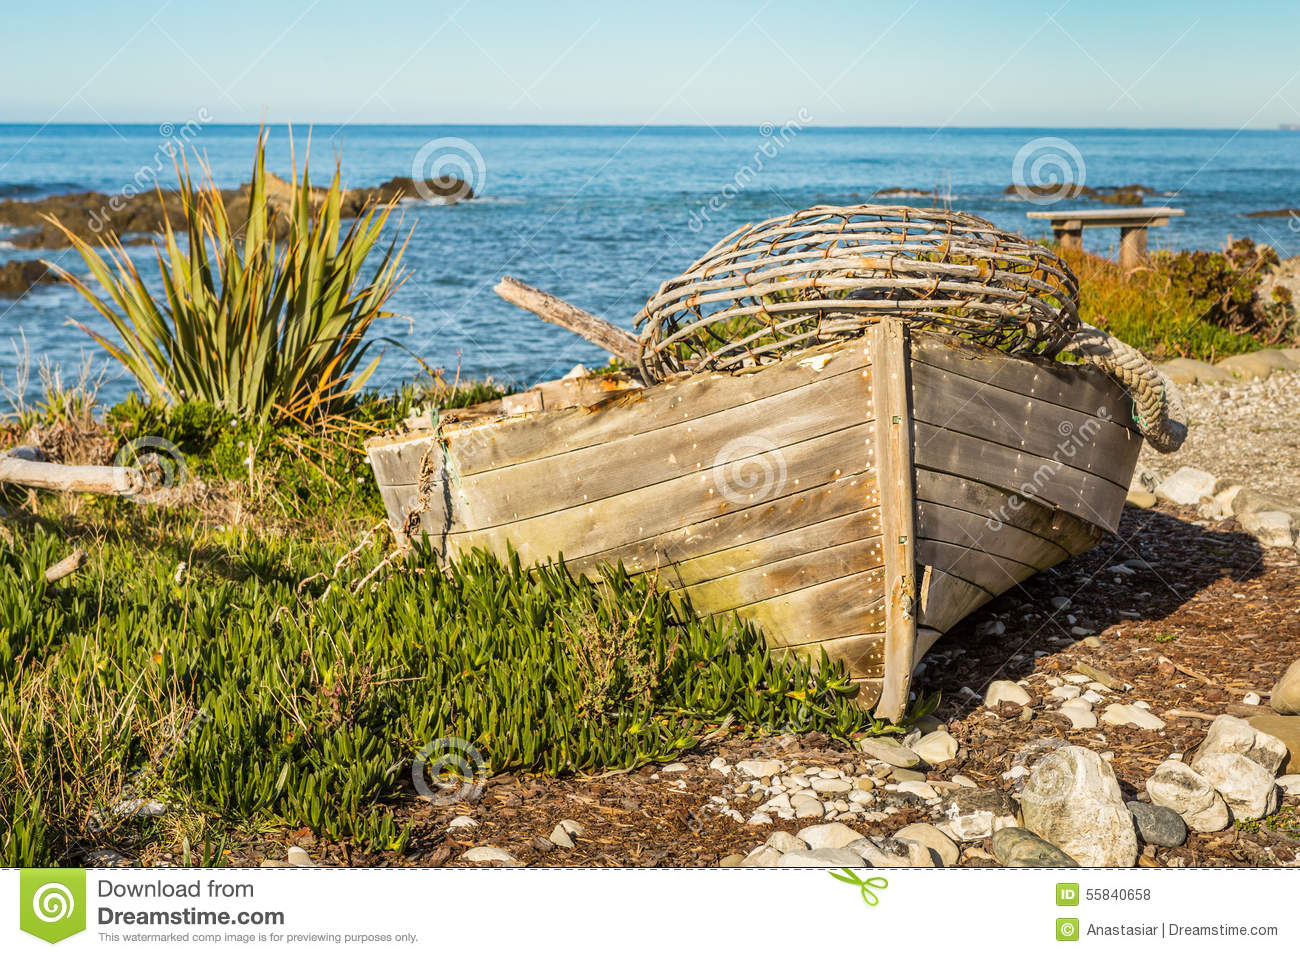 Old Fishermans Boat With A Lobster Trap On A Beach Stock Photo - Image: 55840658